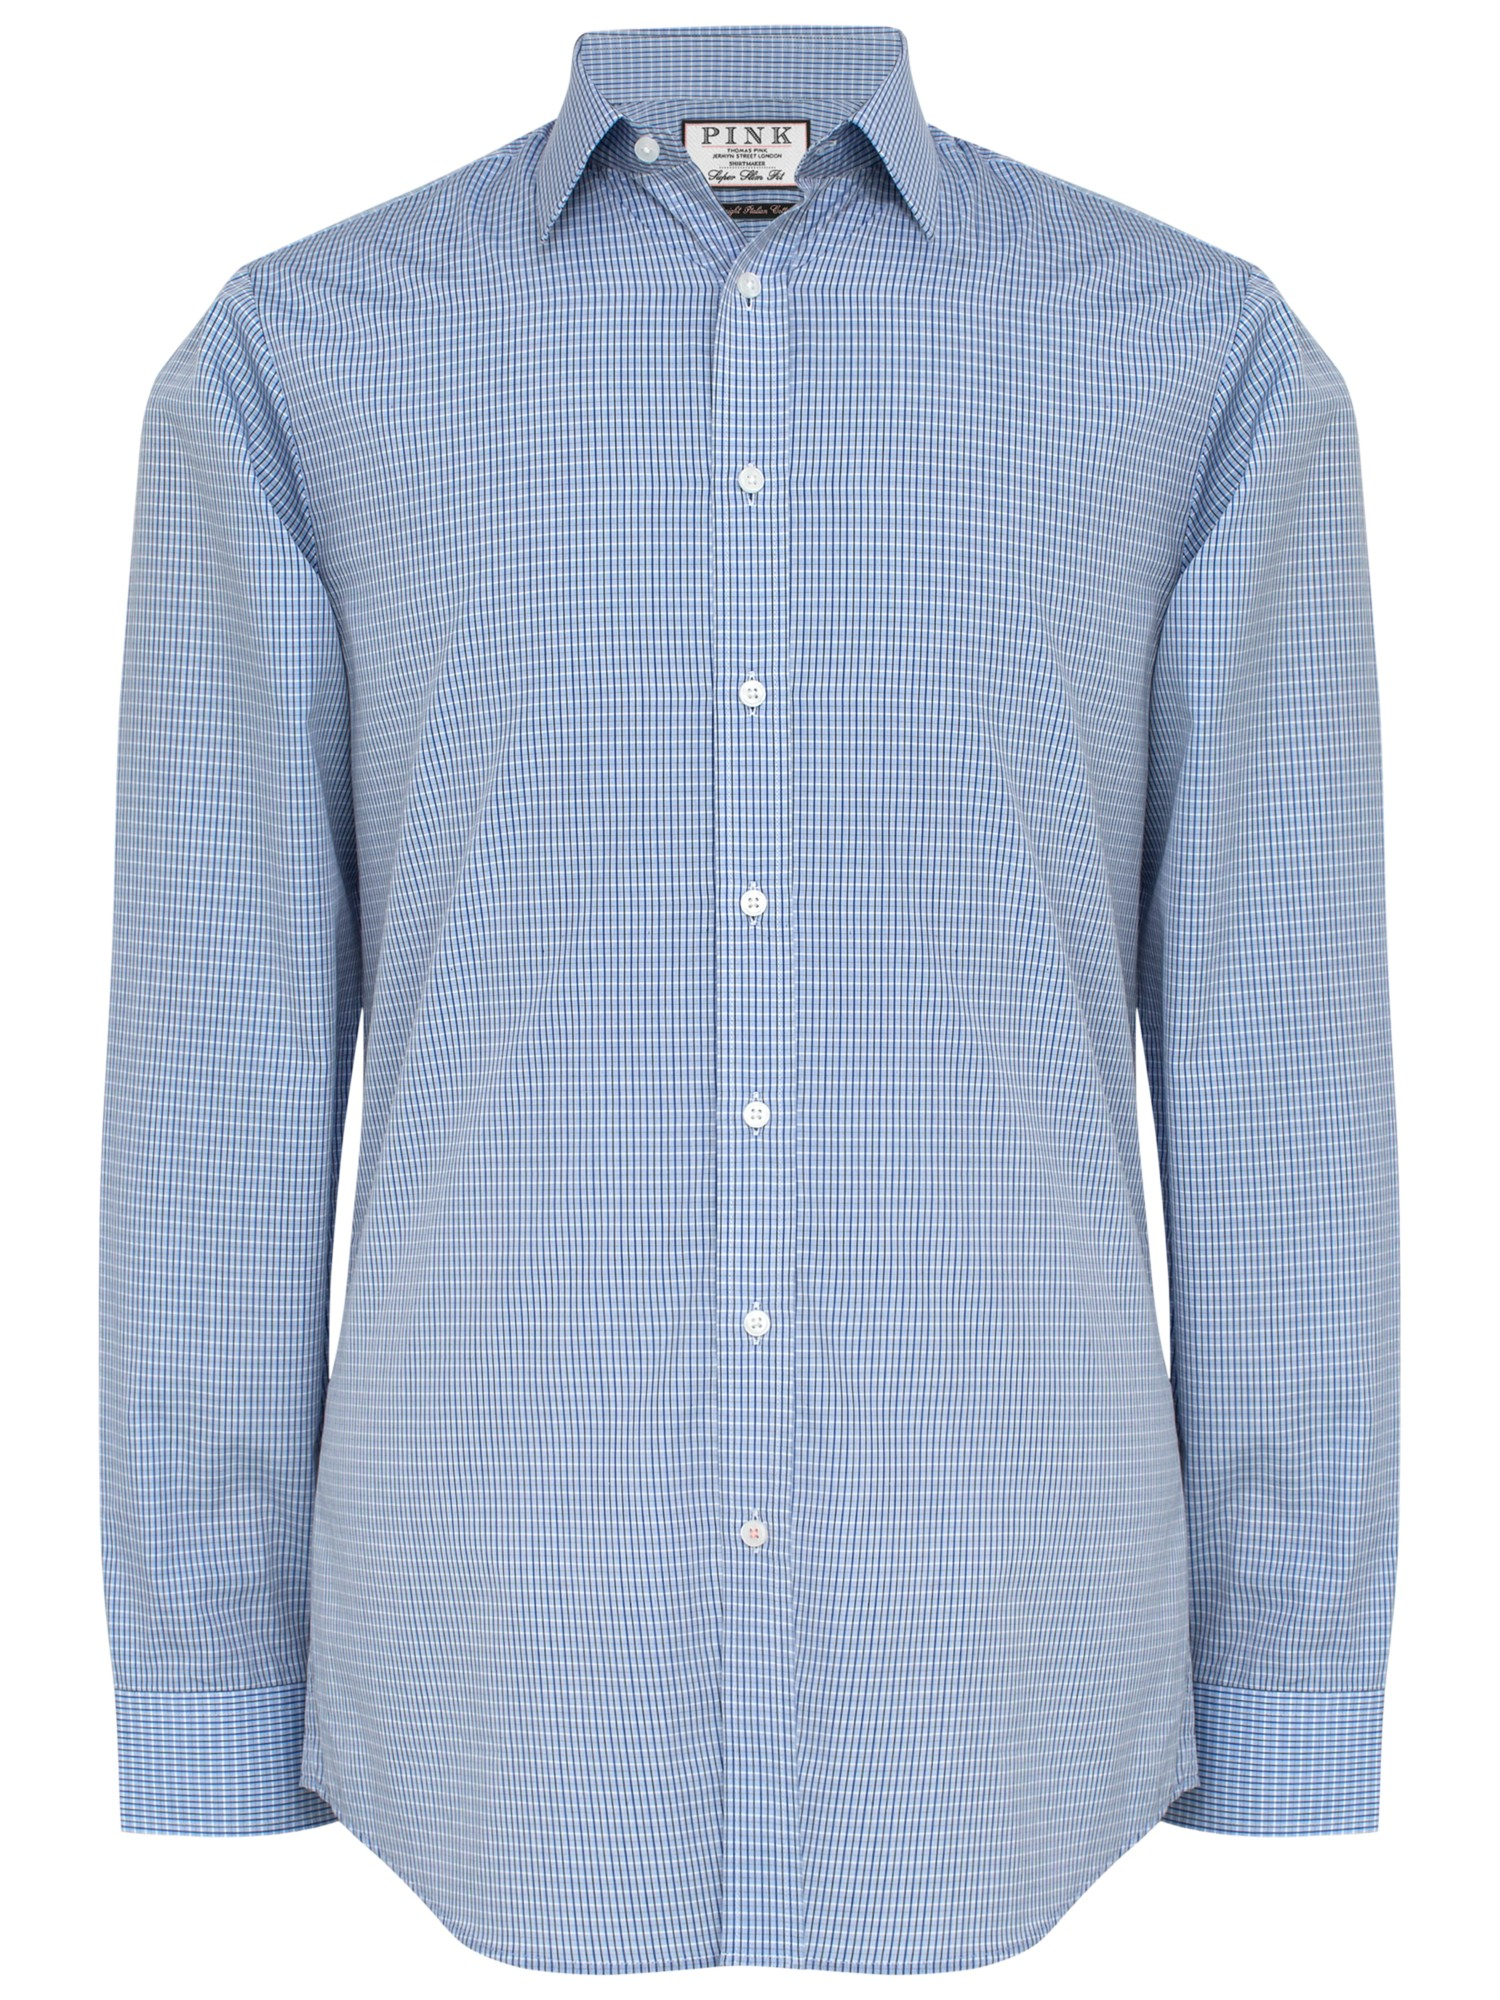 Thomas Pink Macy Check Super Slim Fit Shirt In Blue For